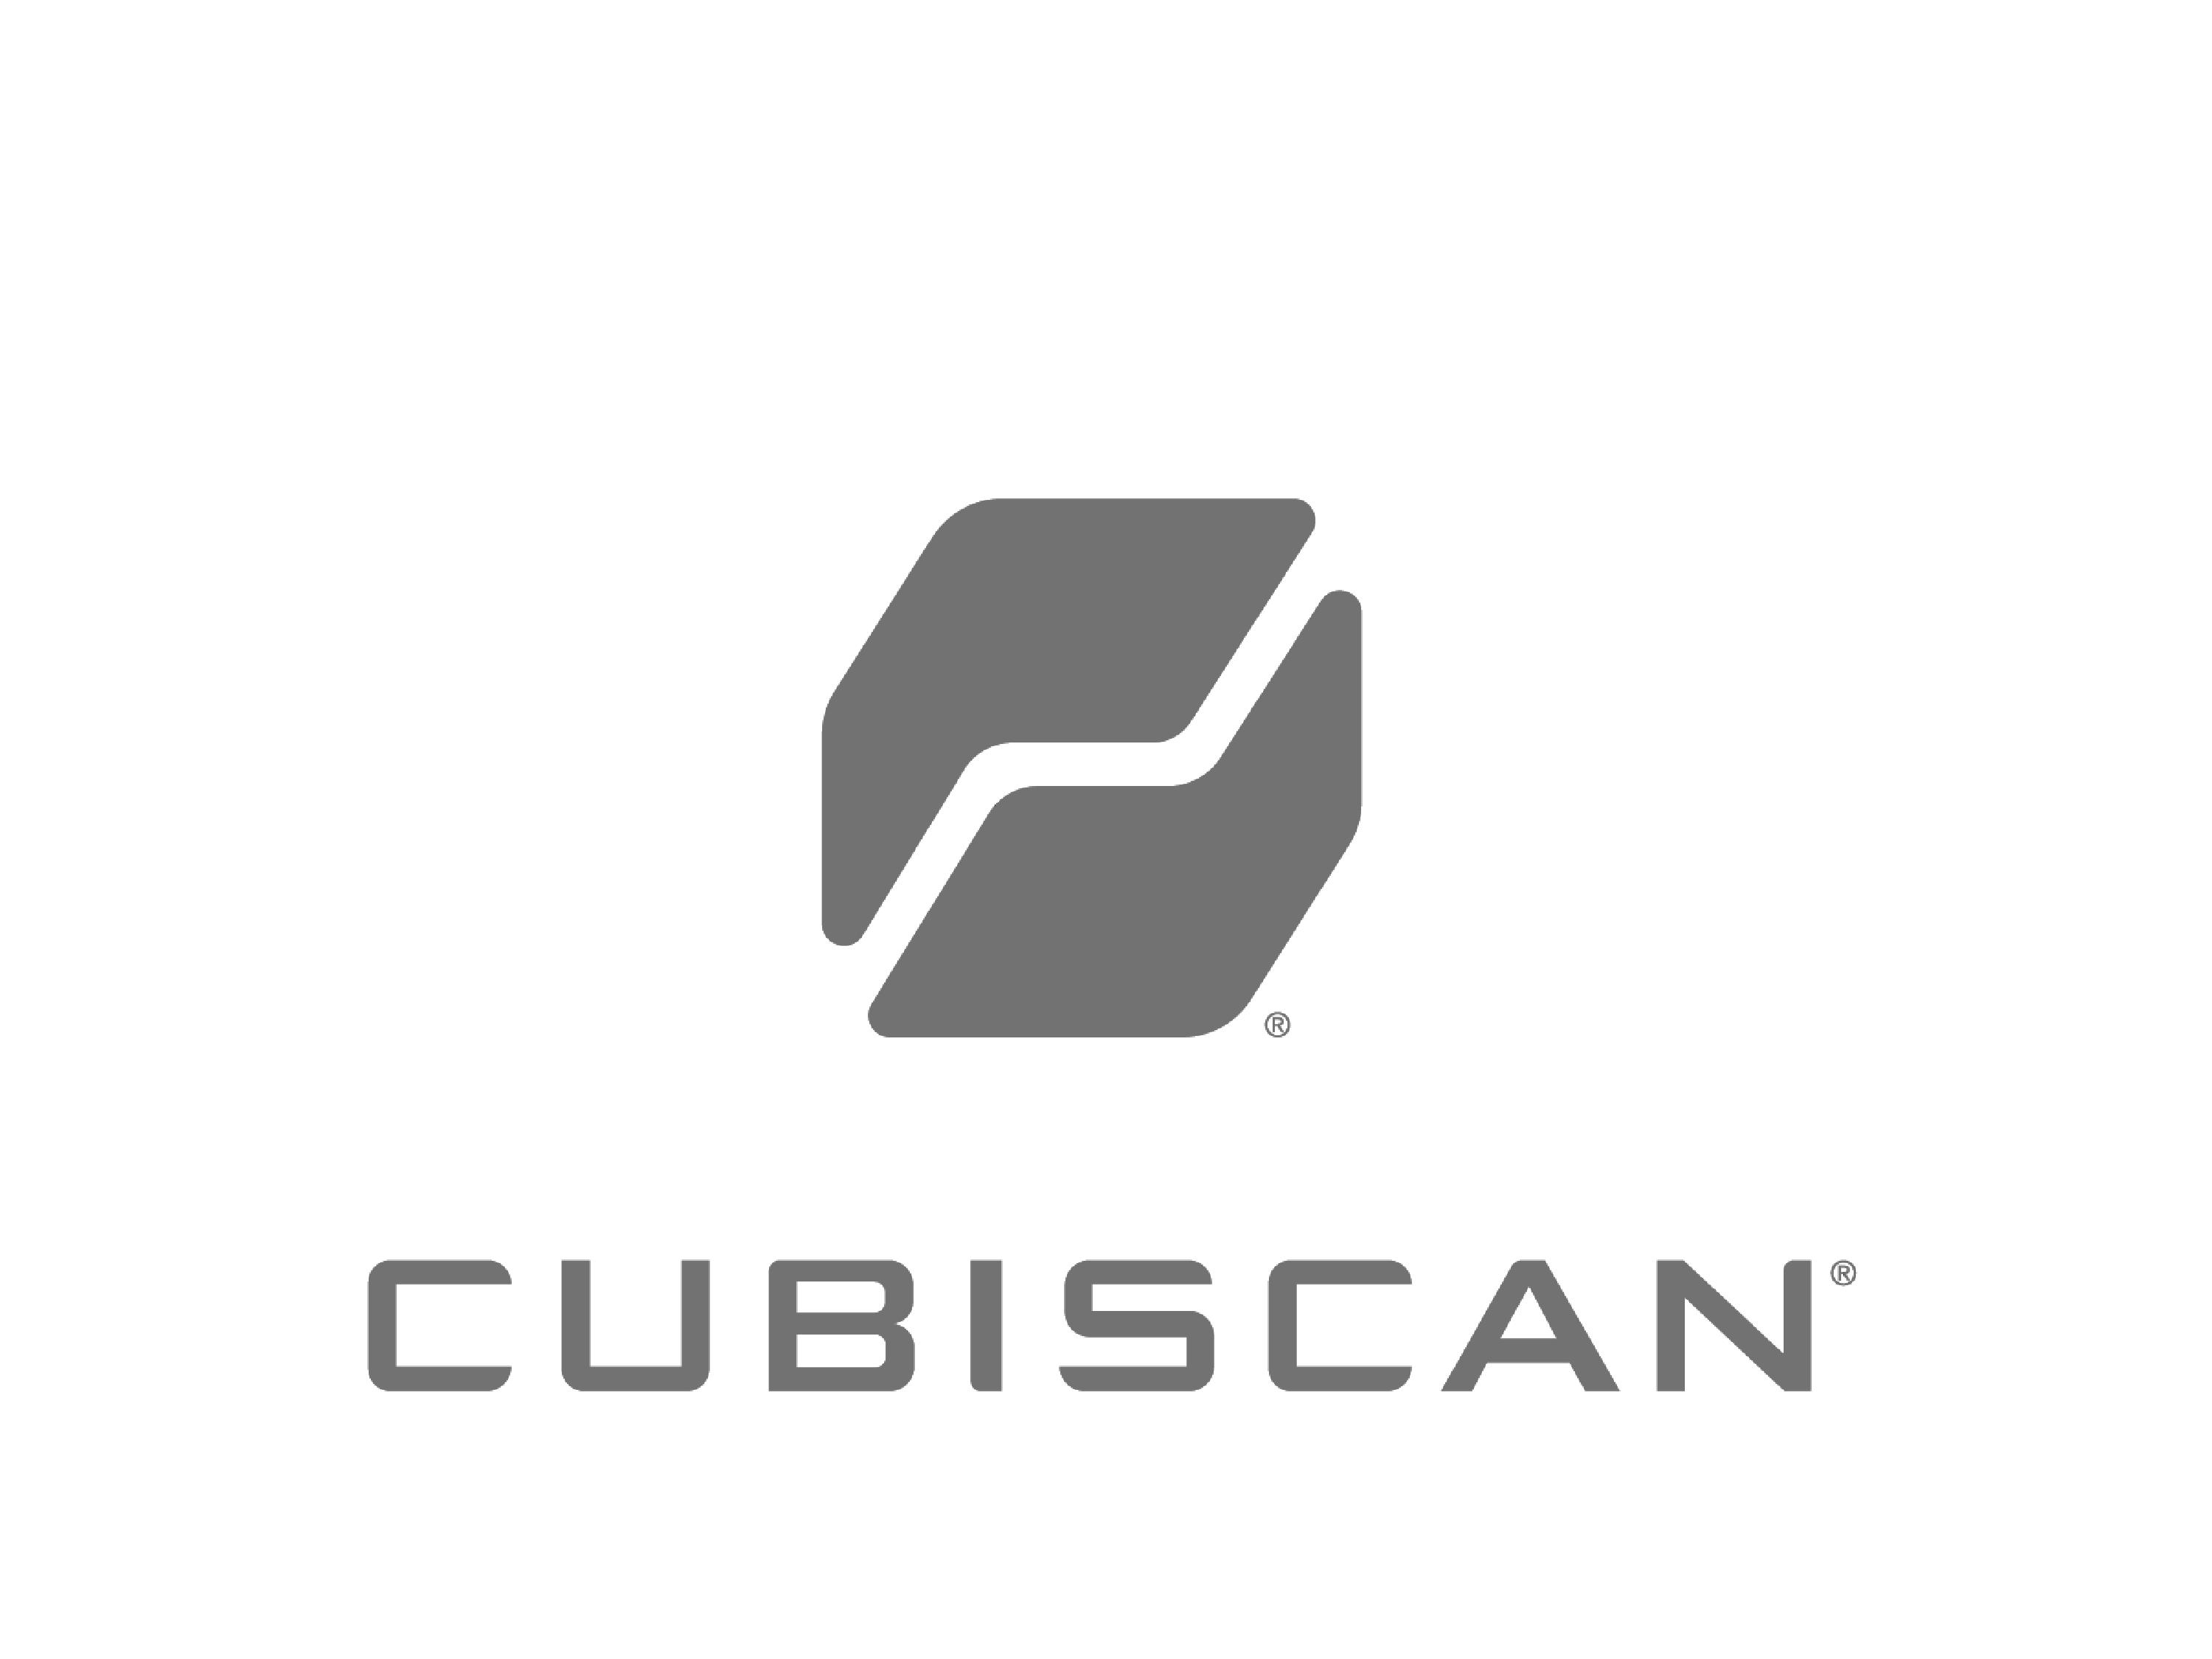 Cubiscan